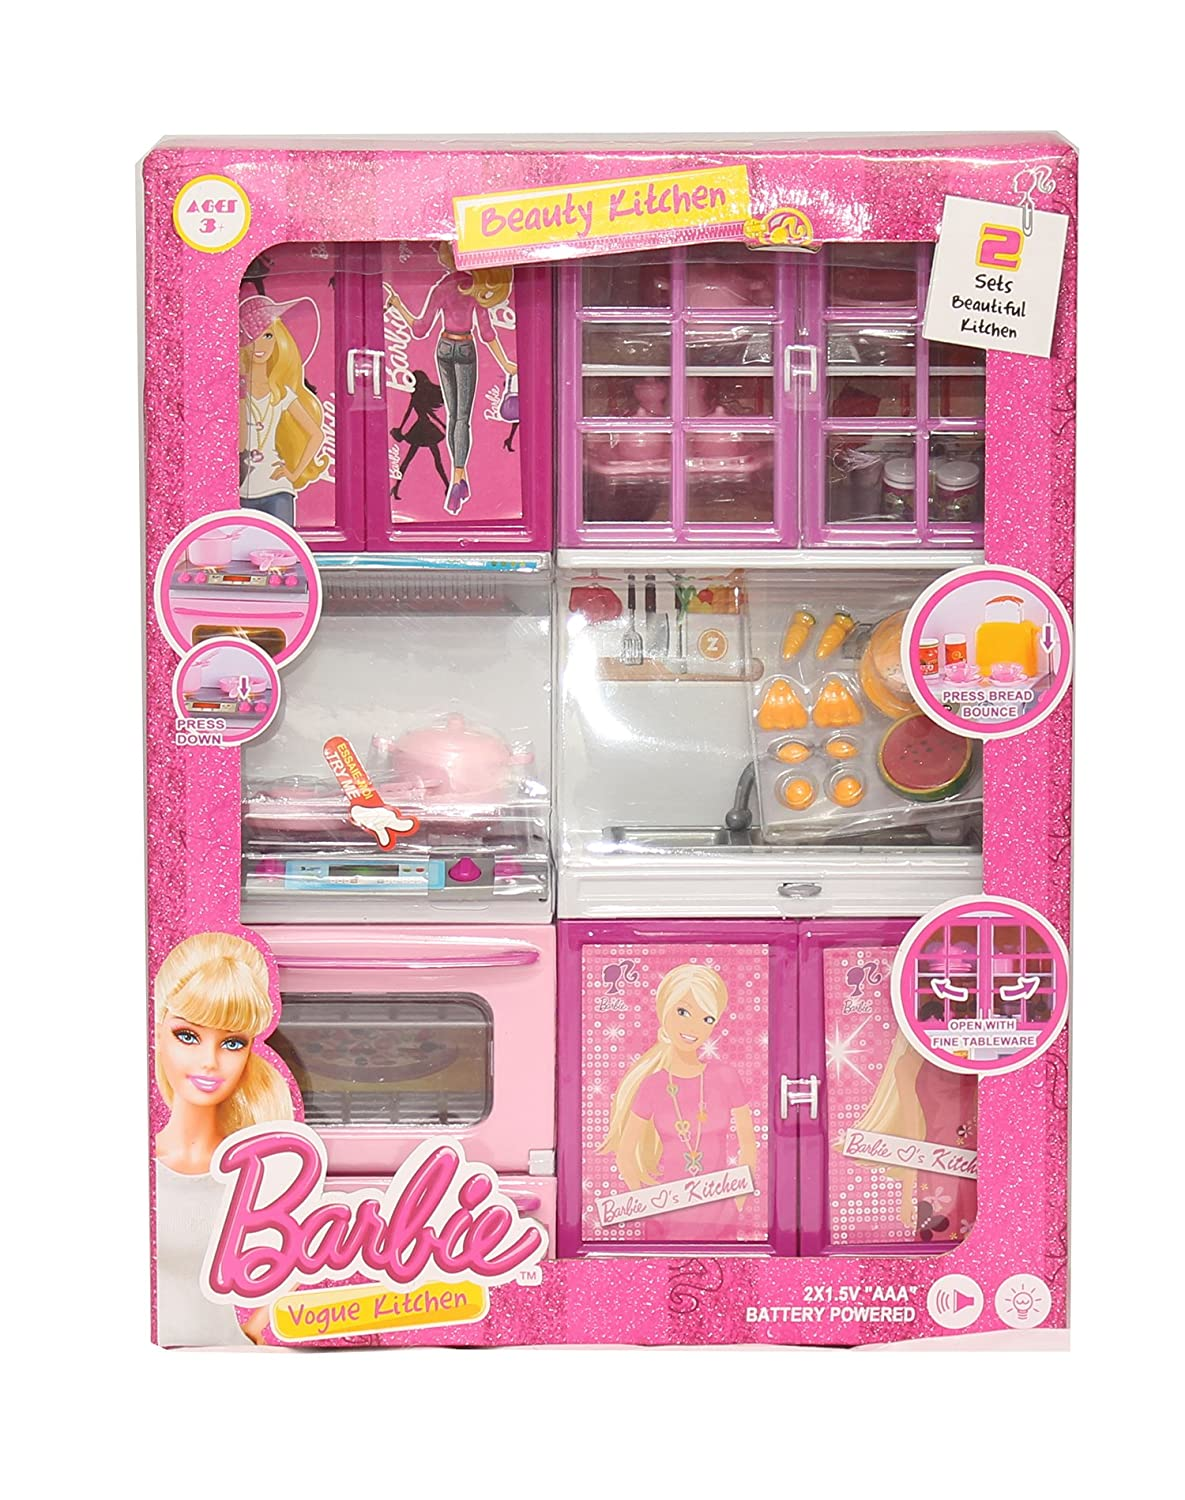 Buy tickles dream house kitchen set light sound toy 3 years plus online at low prices in india amazon in